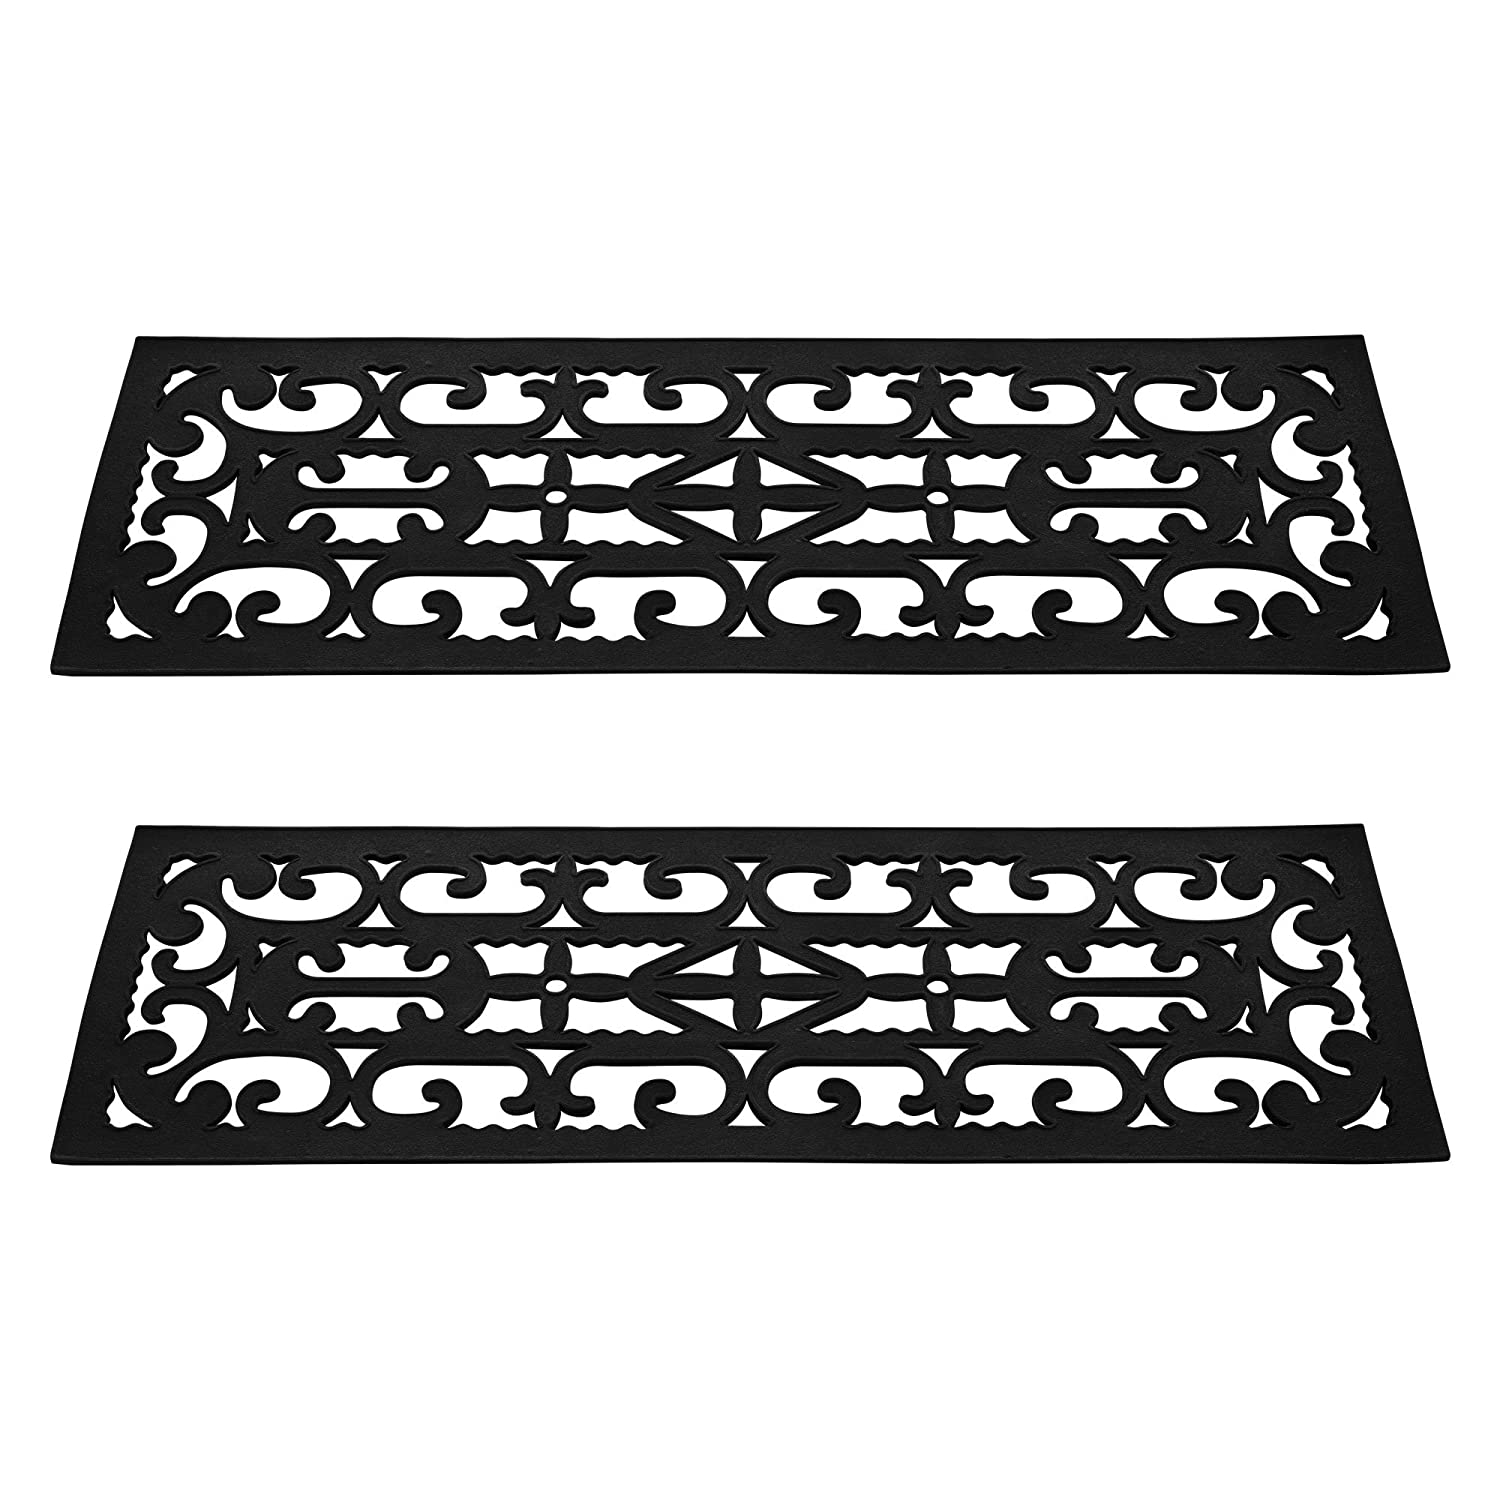 Non Slip Stair Tread Mats 2 Piece By Pure Garden   Staircase Step Treads    Amazon.com